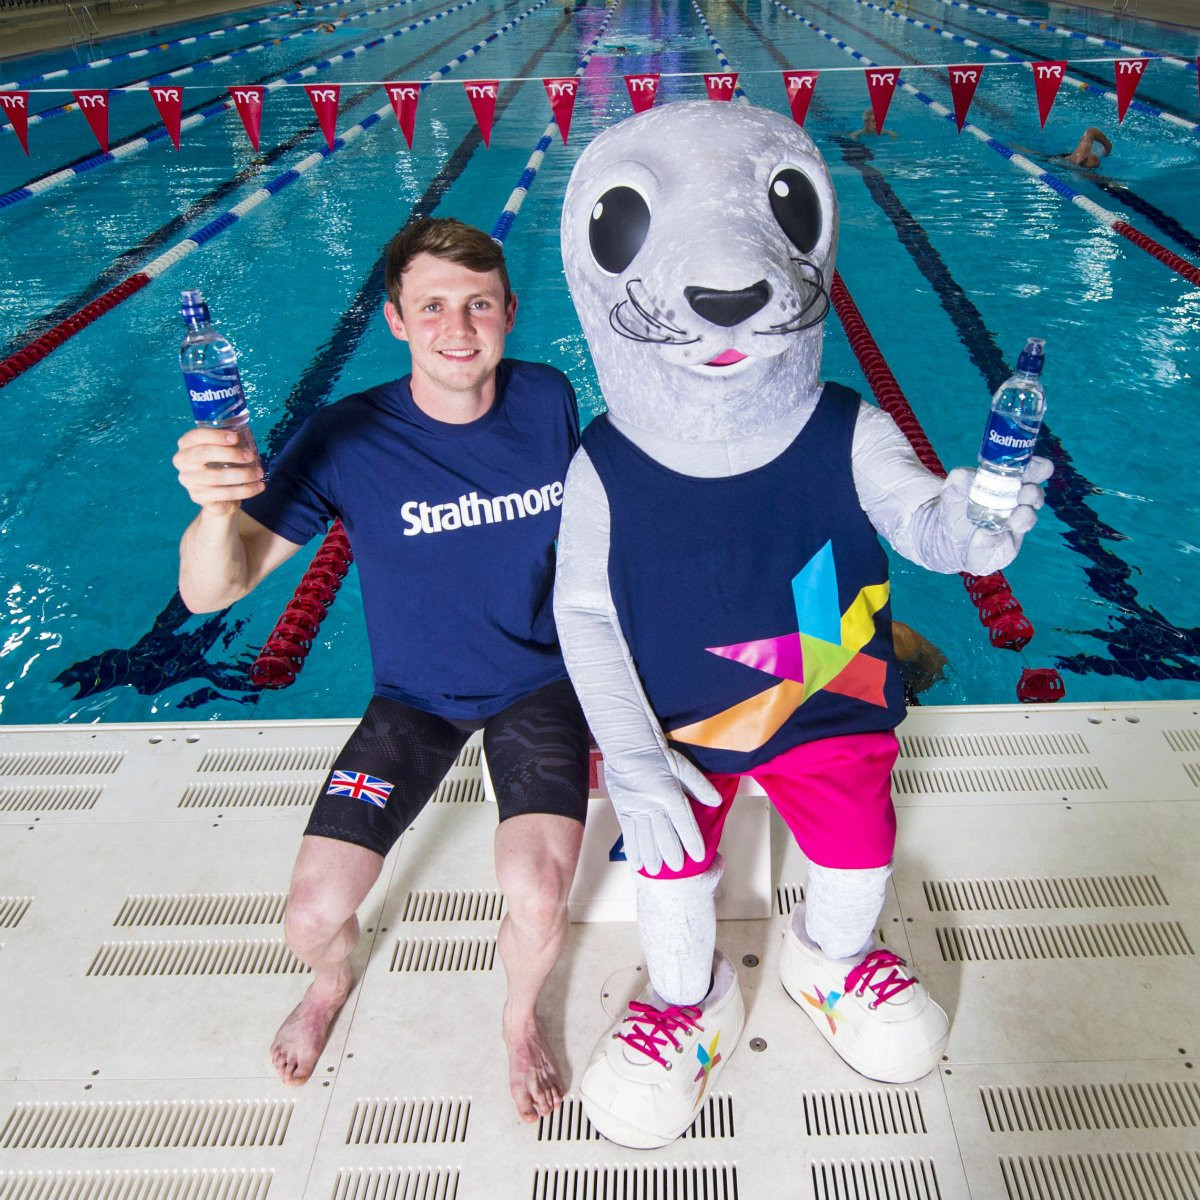 Strathmore Water strike deal to become Glasgow 2018 sponsor